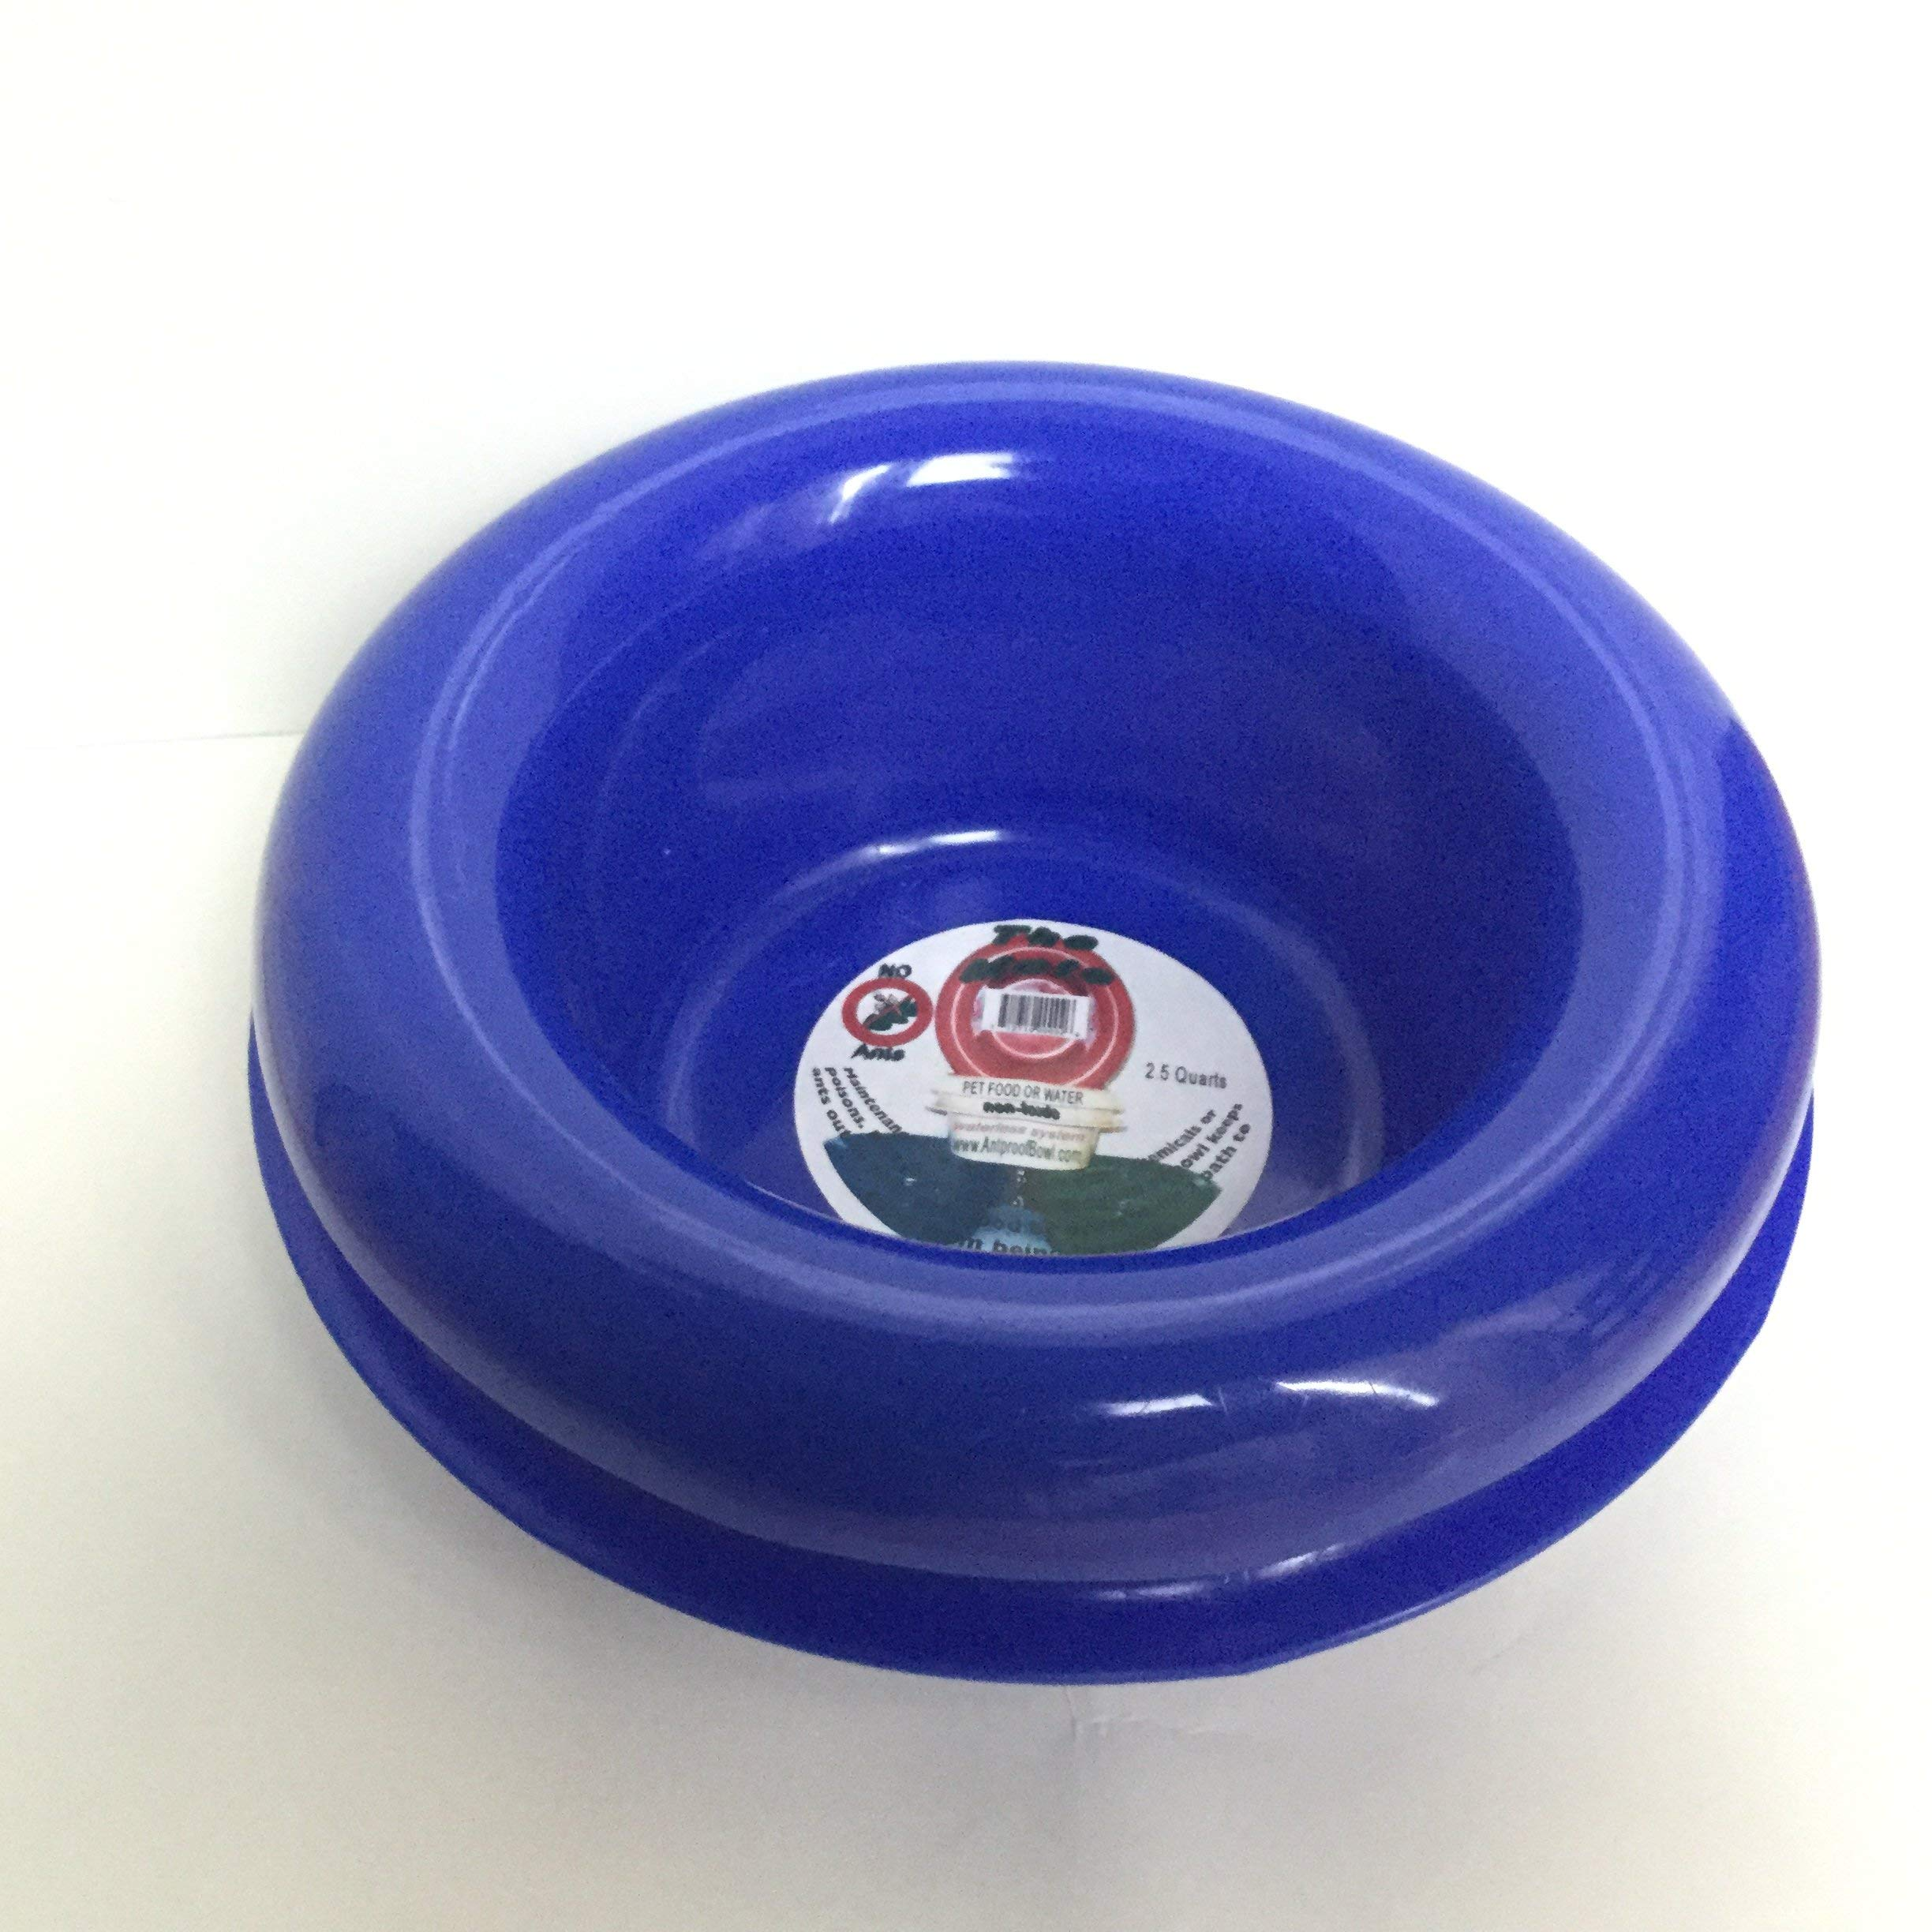 Ant Free Proof Pet Dog Cat Bowls 2 Pack - Made in The USA by Insider Bat